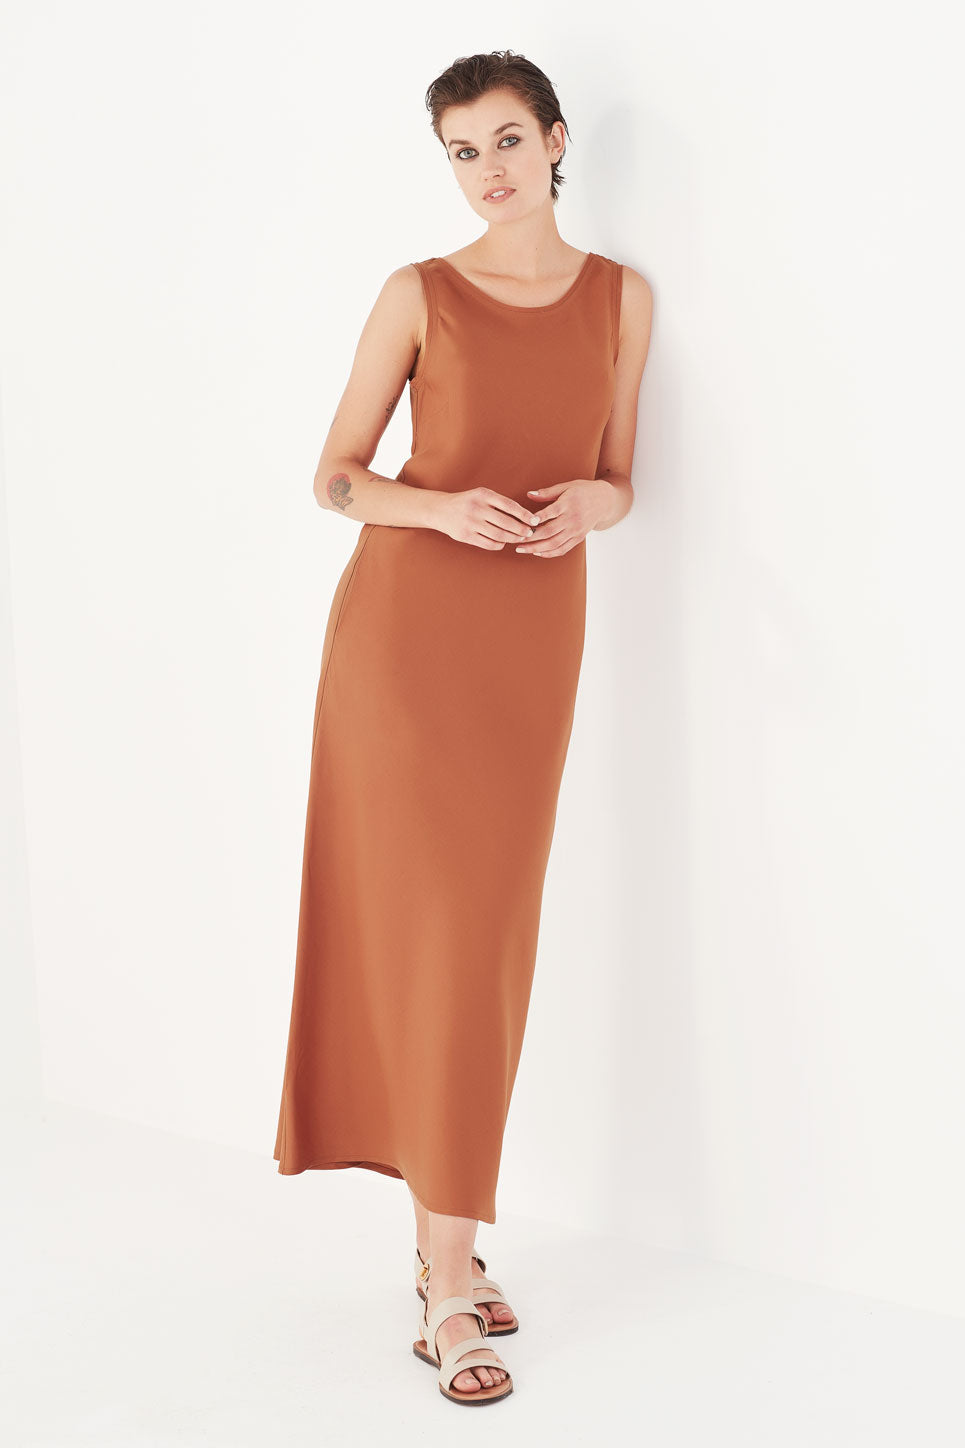 The Pryce Dress in Cinnamon